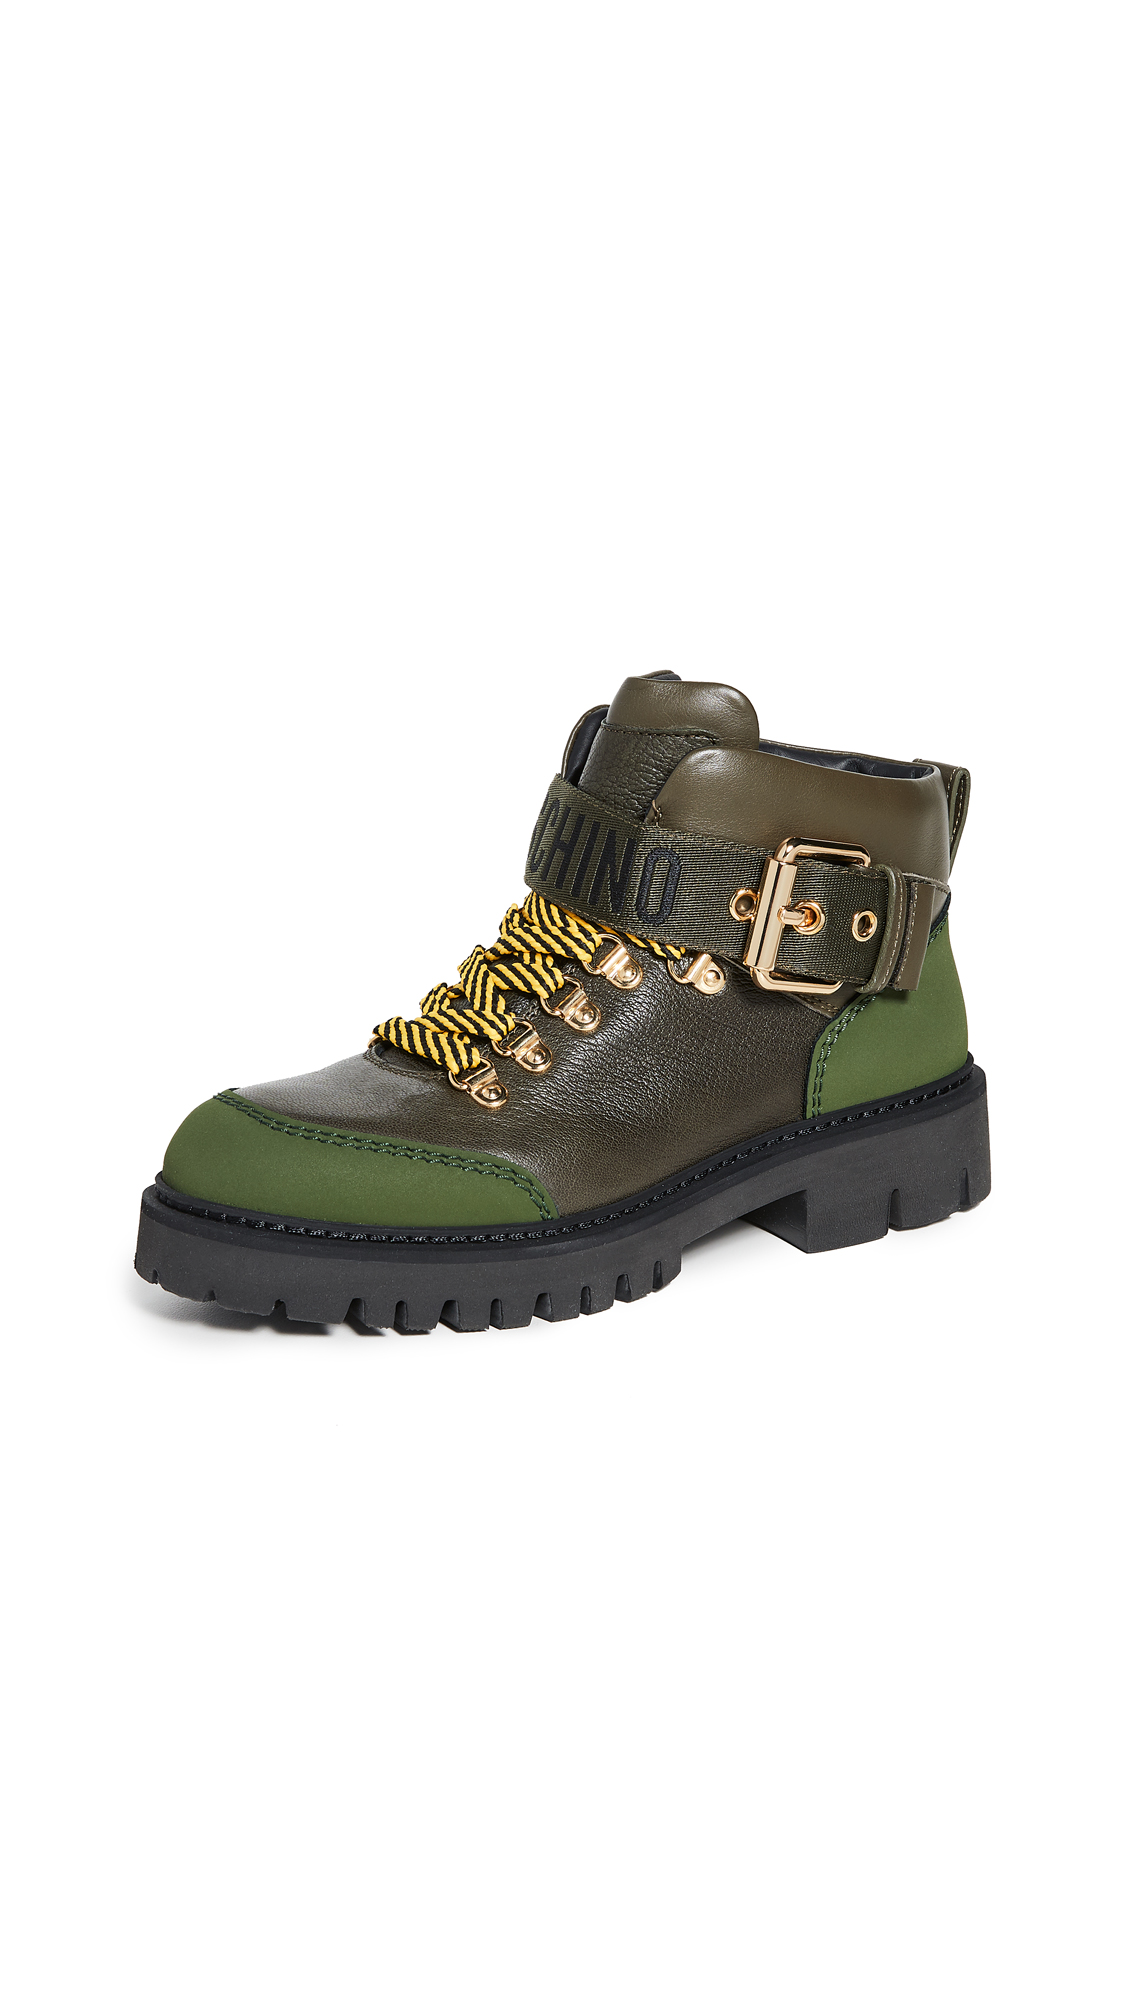 Moschino Combat Ankle Boots In Military Green/Military Green